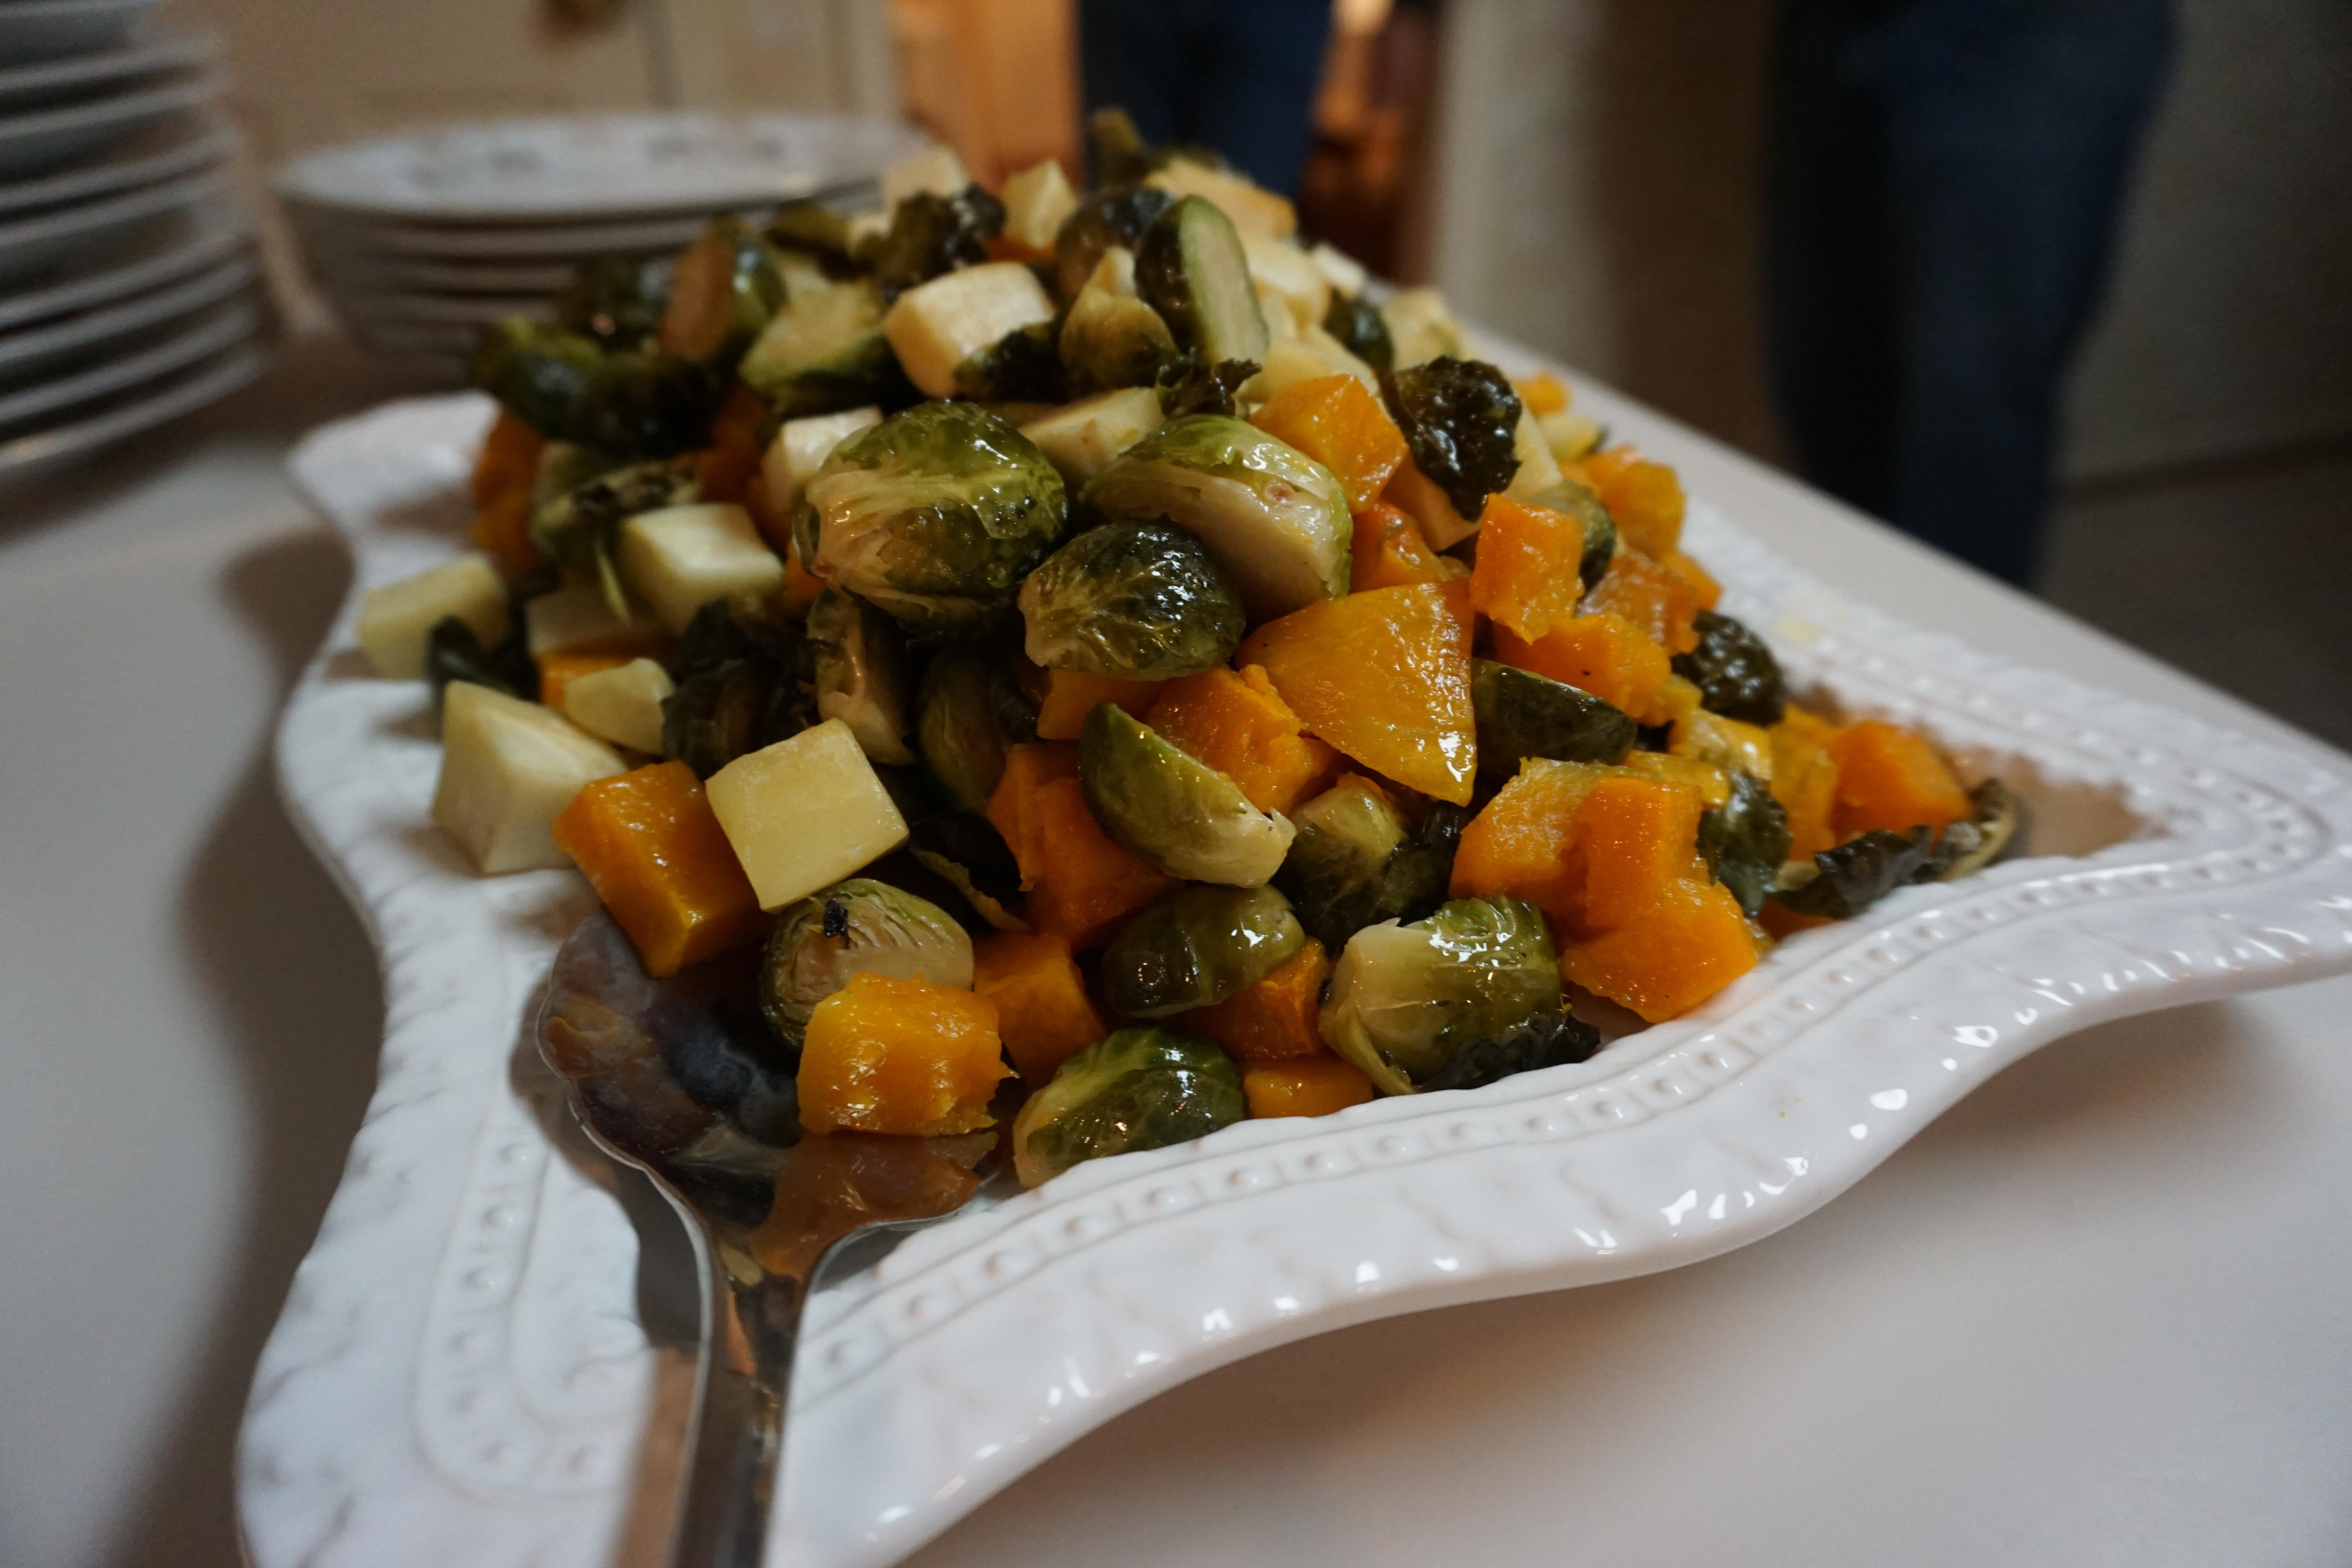 Sweet Potatoes, Brussel Sprouts, and Apples